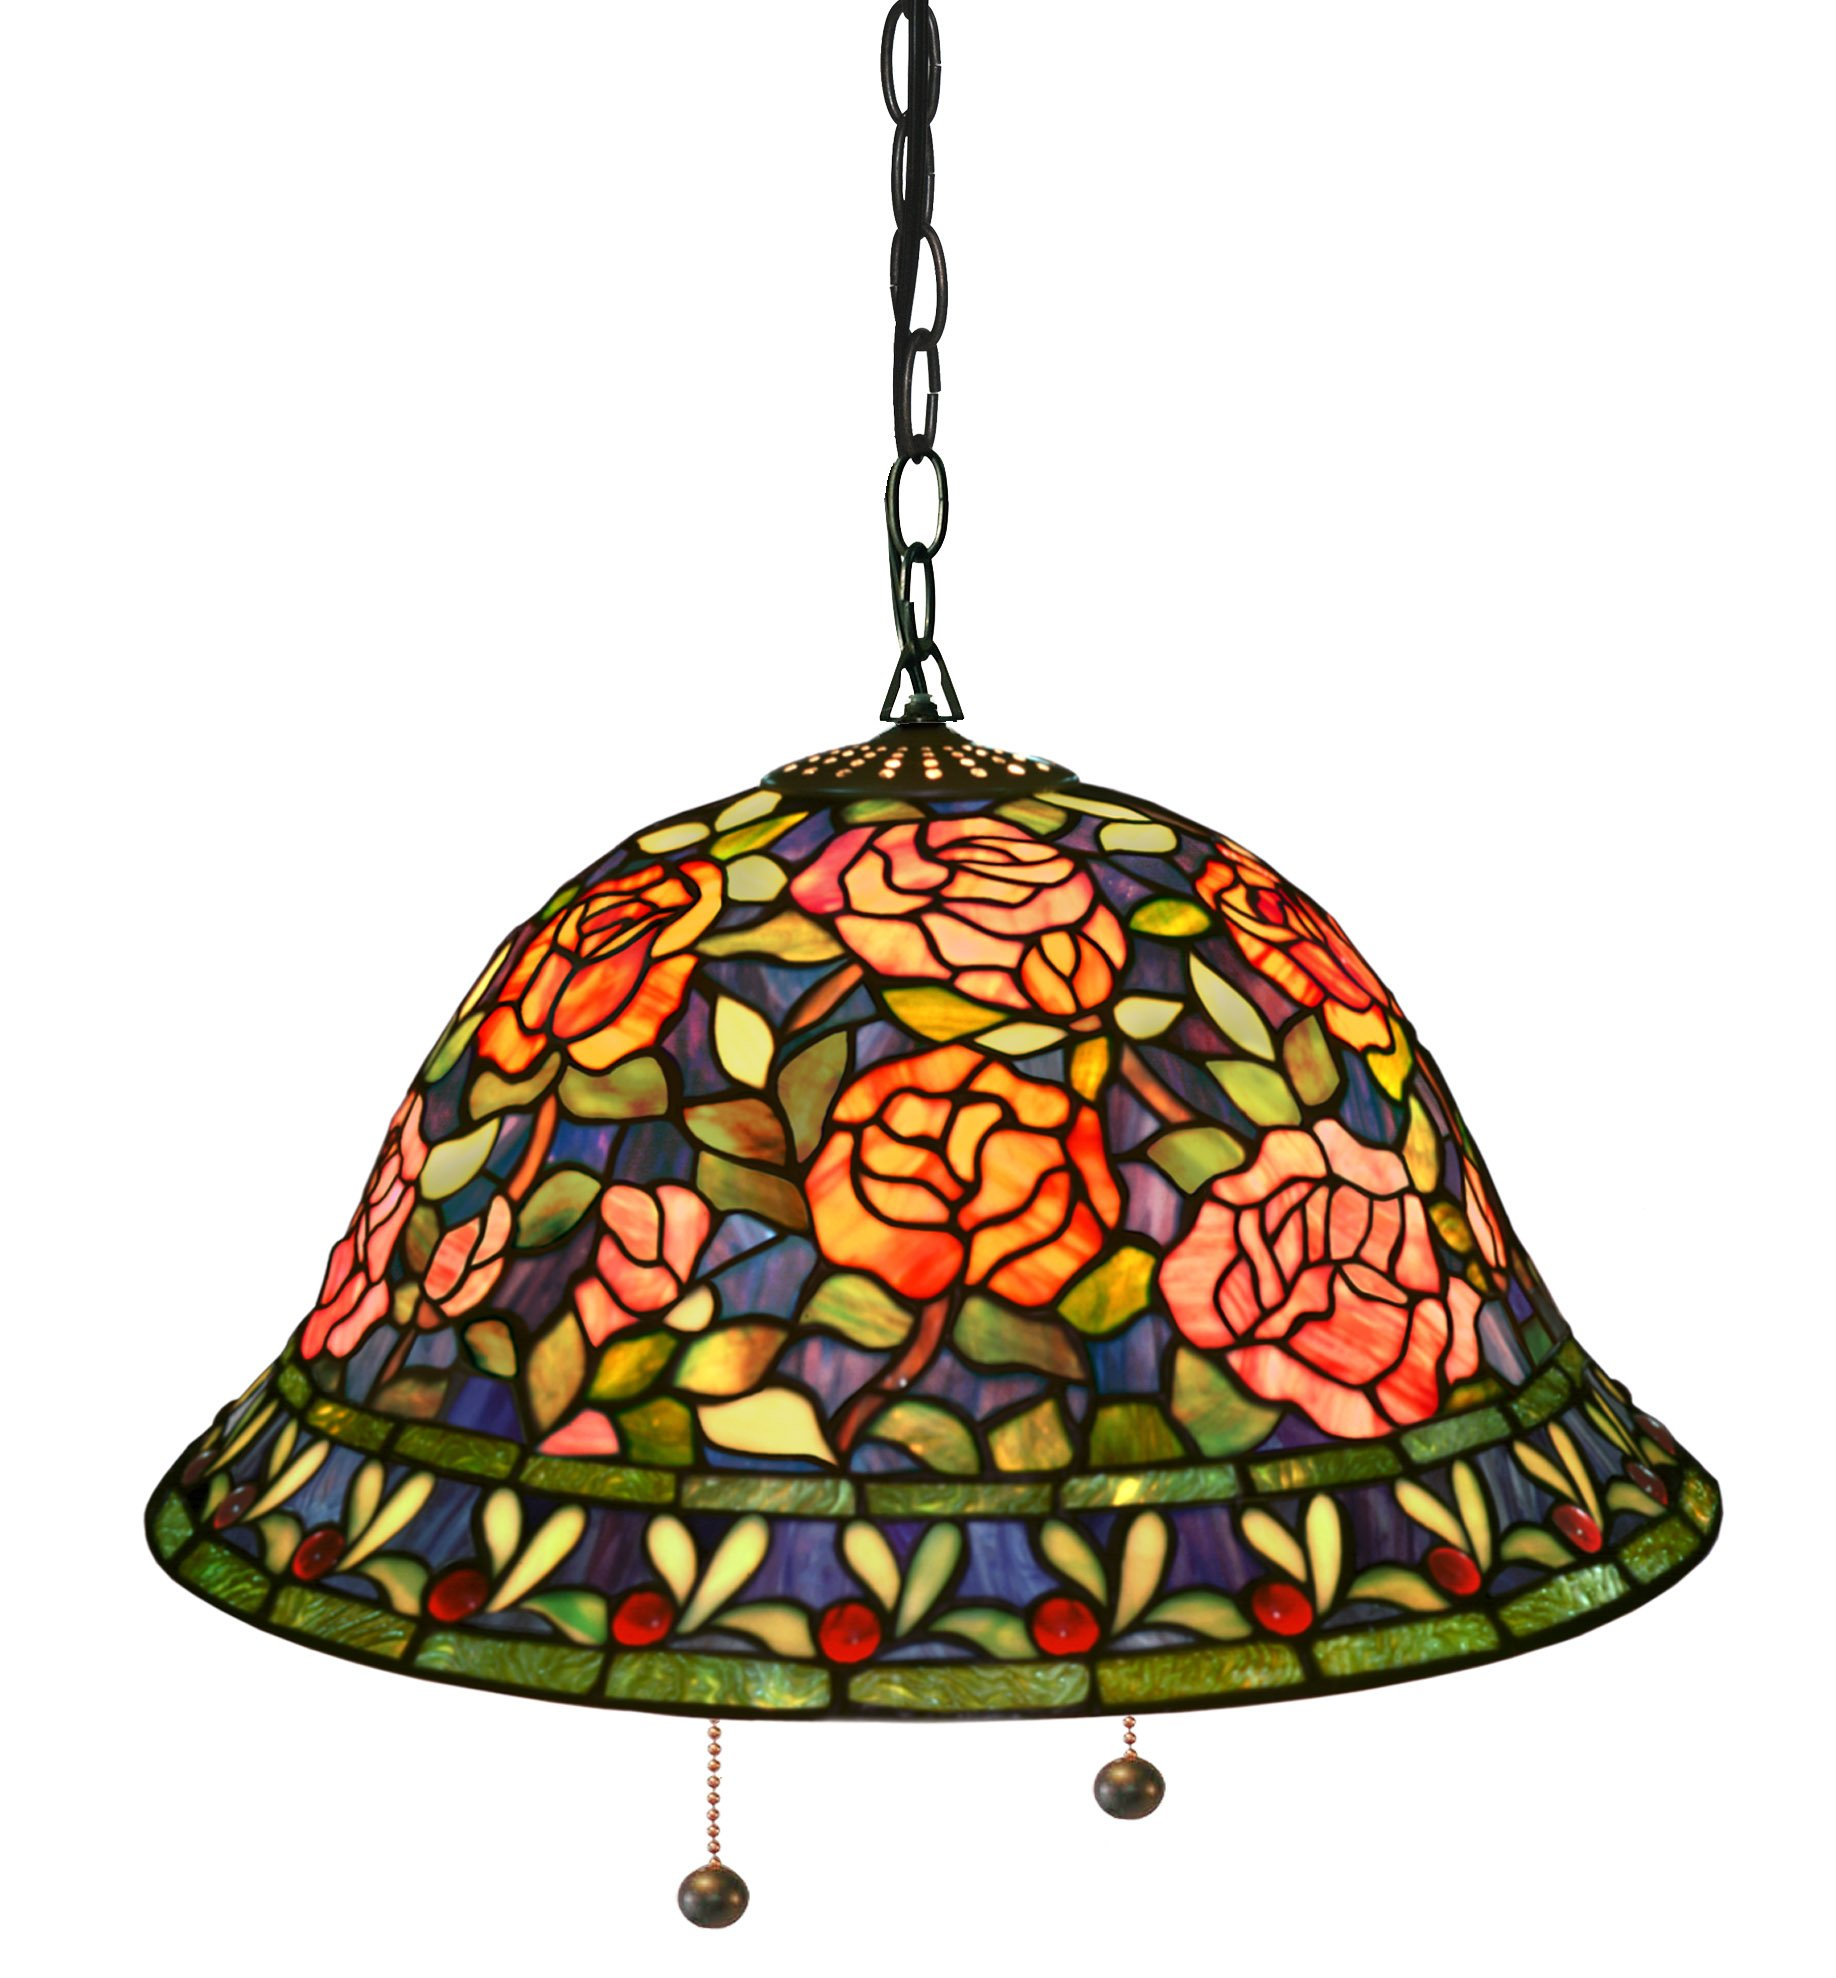 Warehouse of Tiffany's ES-93 Tiffany-Style Southern Belle Rose Hanging Lamp, One Size, Multi-Color